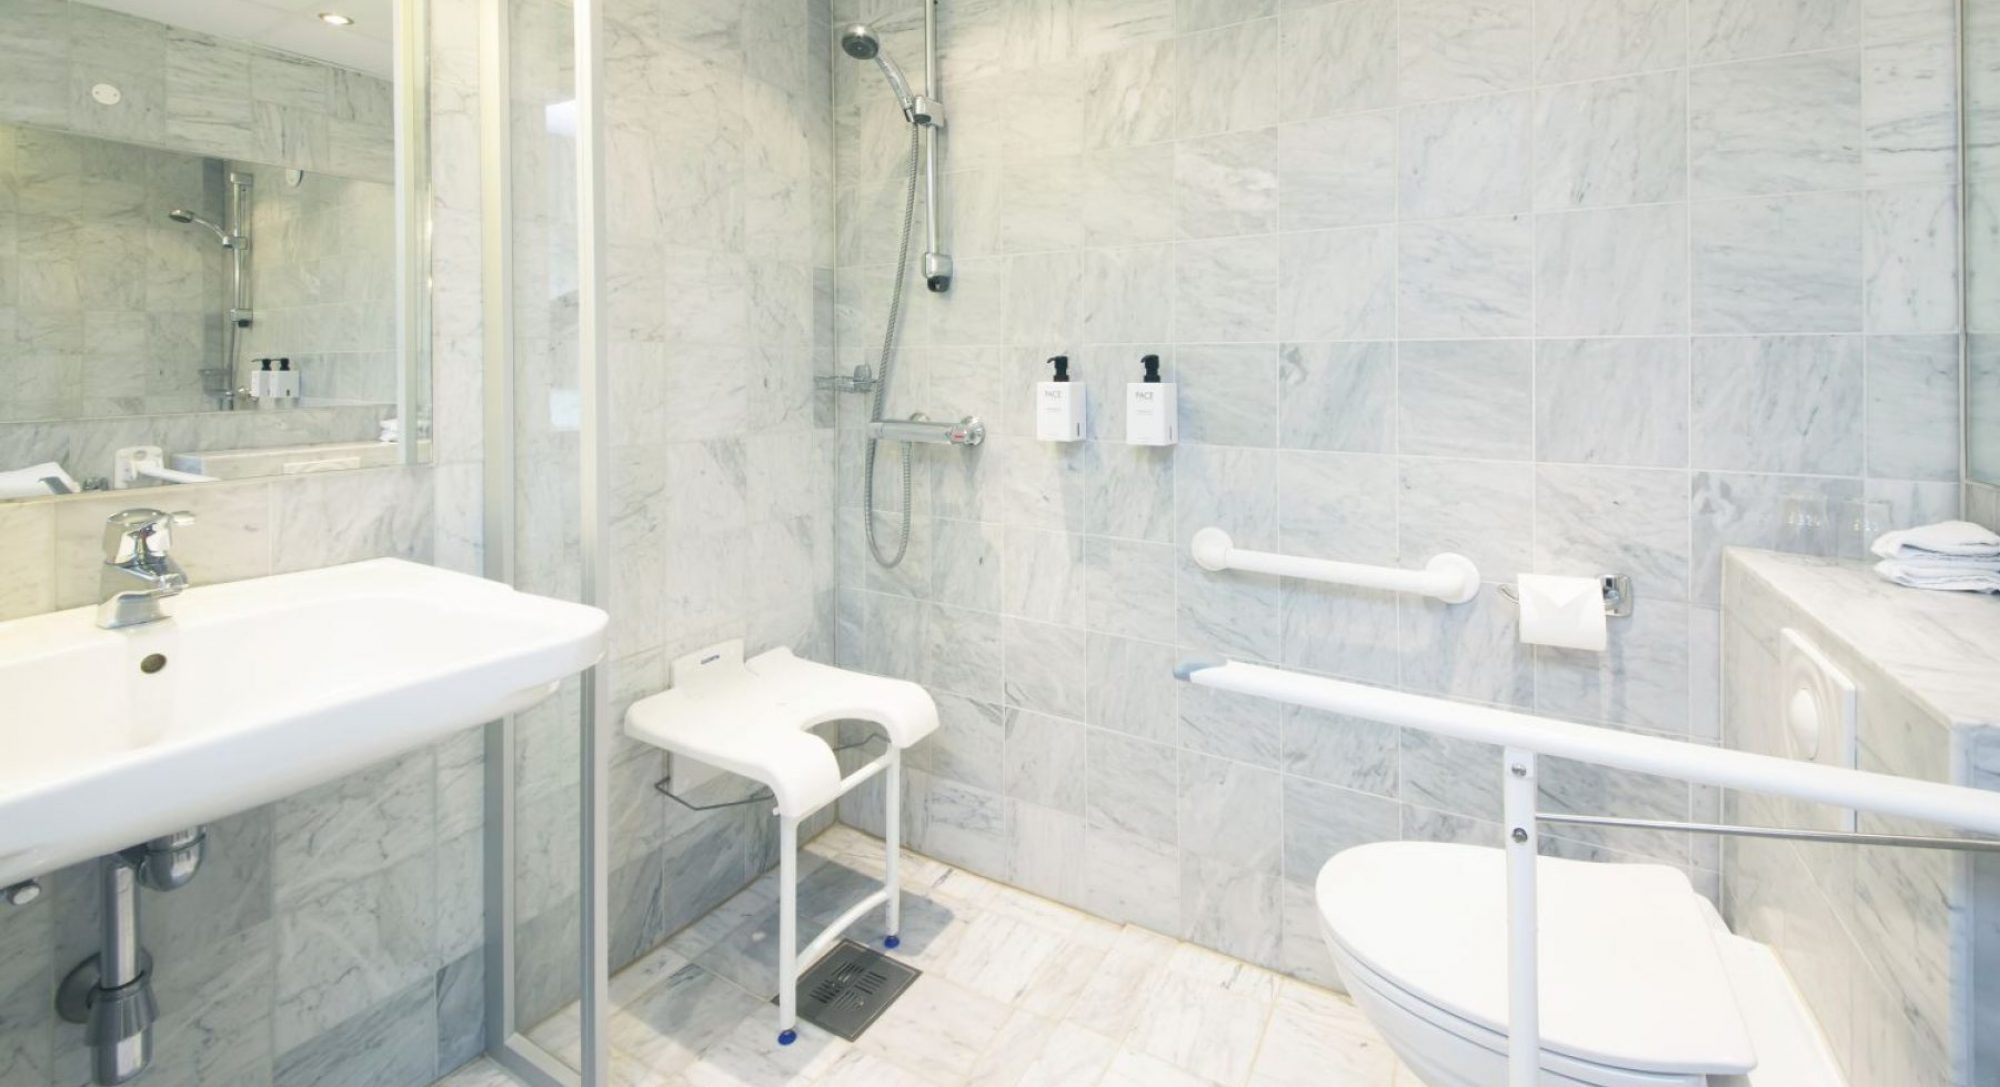 Design For Handicap Bathrooms - Heating, Bathroom, Kitchen, Windows